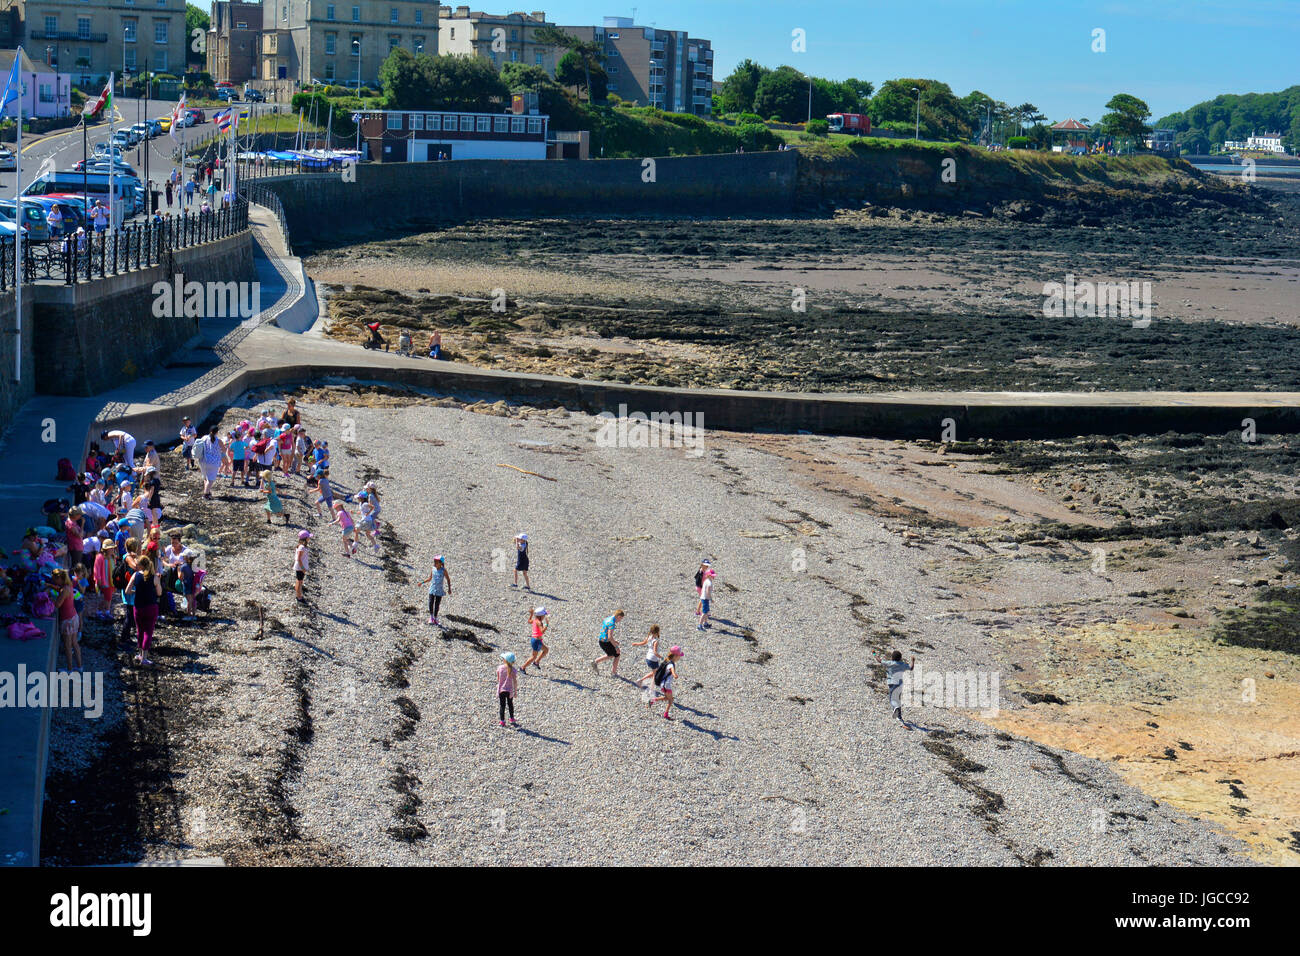 Clevedon Beach, UK. 5th July, 2017. UK Weather. On a Hot and sticky day in Clevedon people and school trip are enjoying - Stock Image